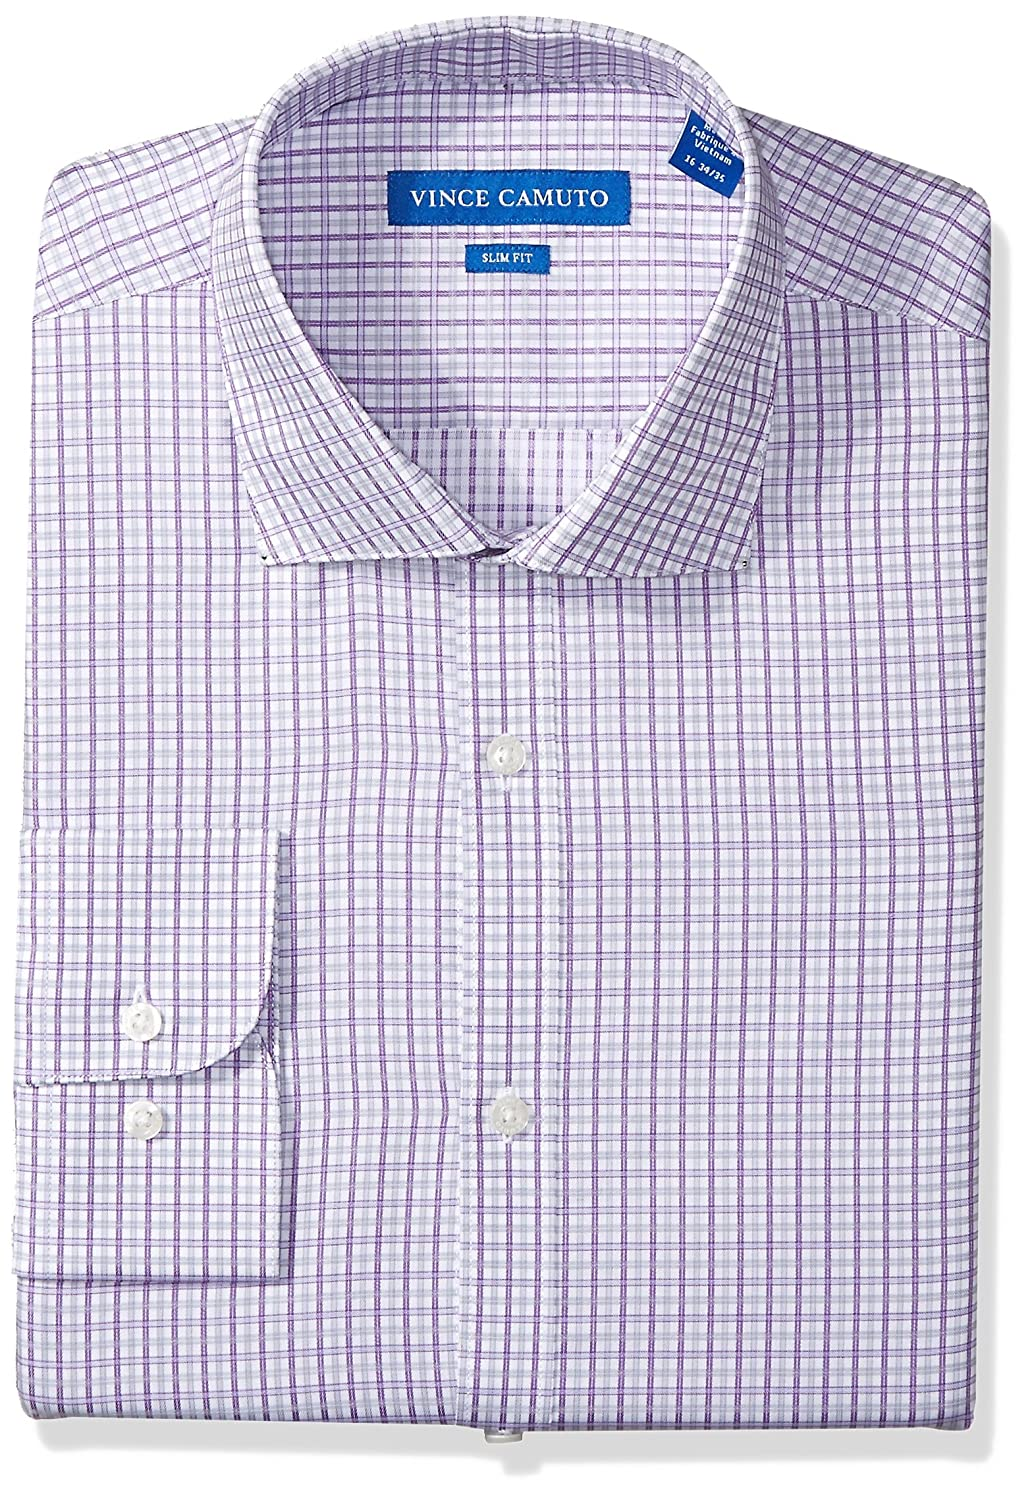 Vince Camuto Mens Slim Fit Sateen Check Dress Shirt Vince Camuto Tailored VD114S